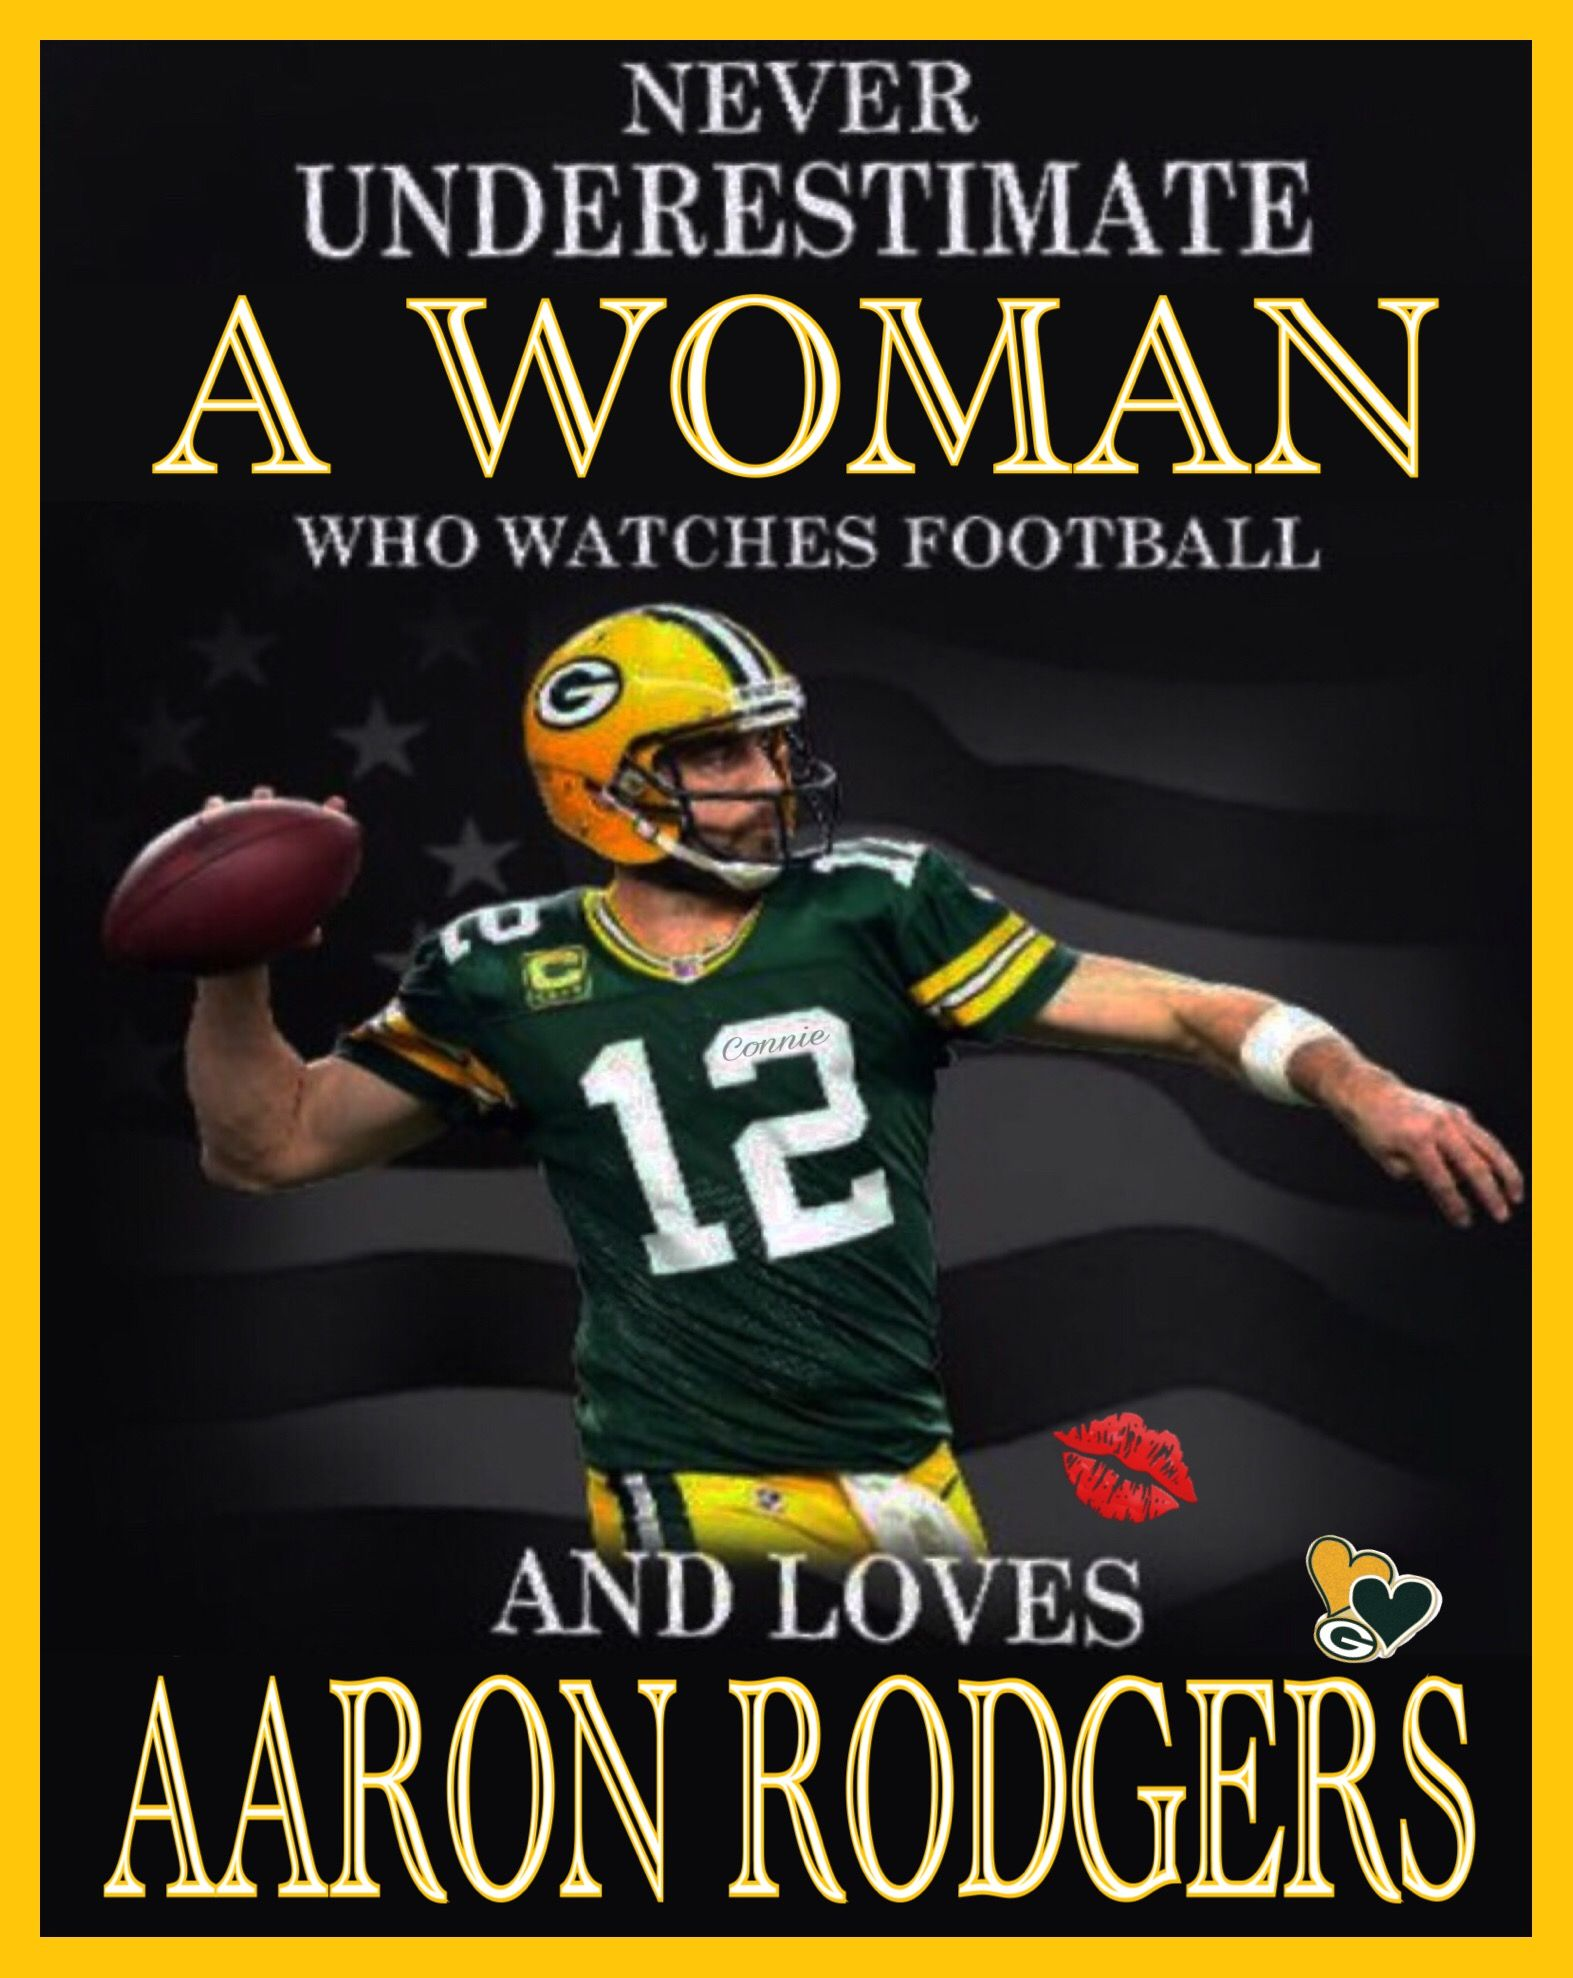 Green Bay Packers Green Bay Packers Aaron Rodgers Green Bay Packers Football Green Bay Packers